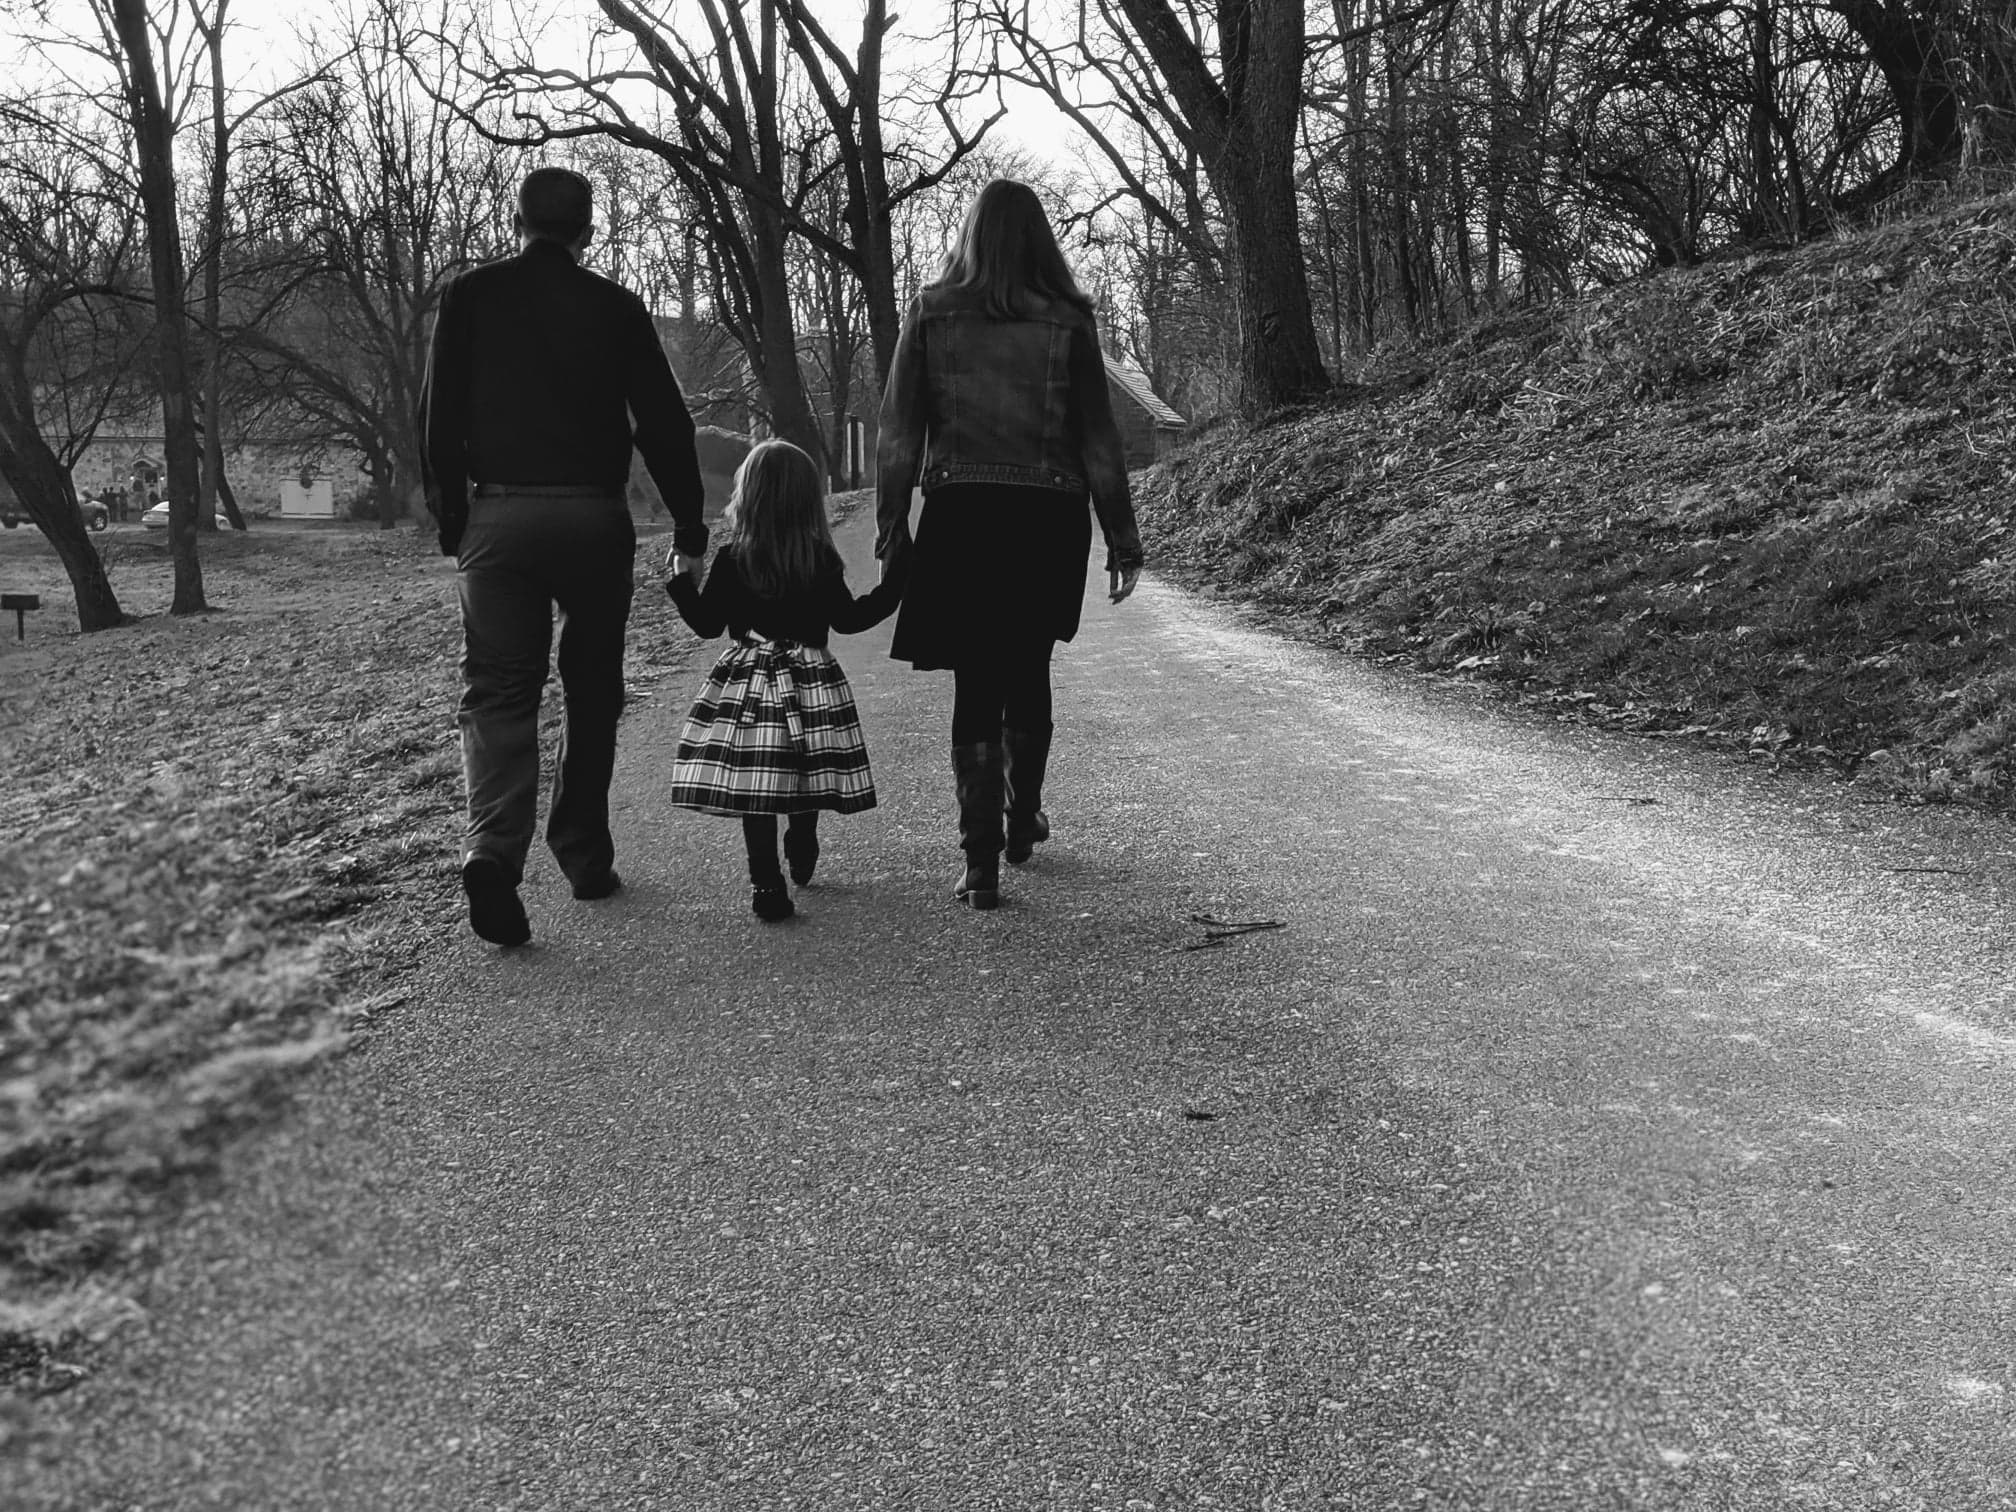 Little girl holding hands and walking with mom and dad on each side, black-and-white photo